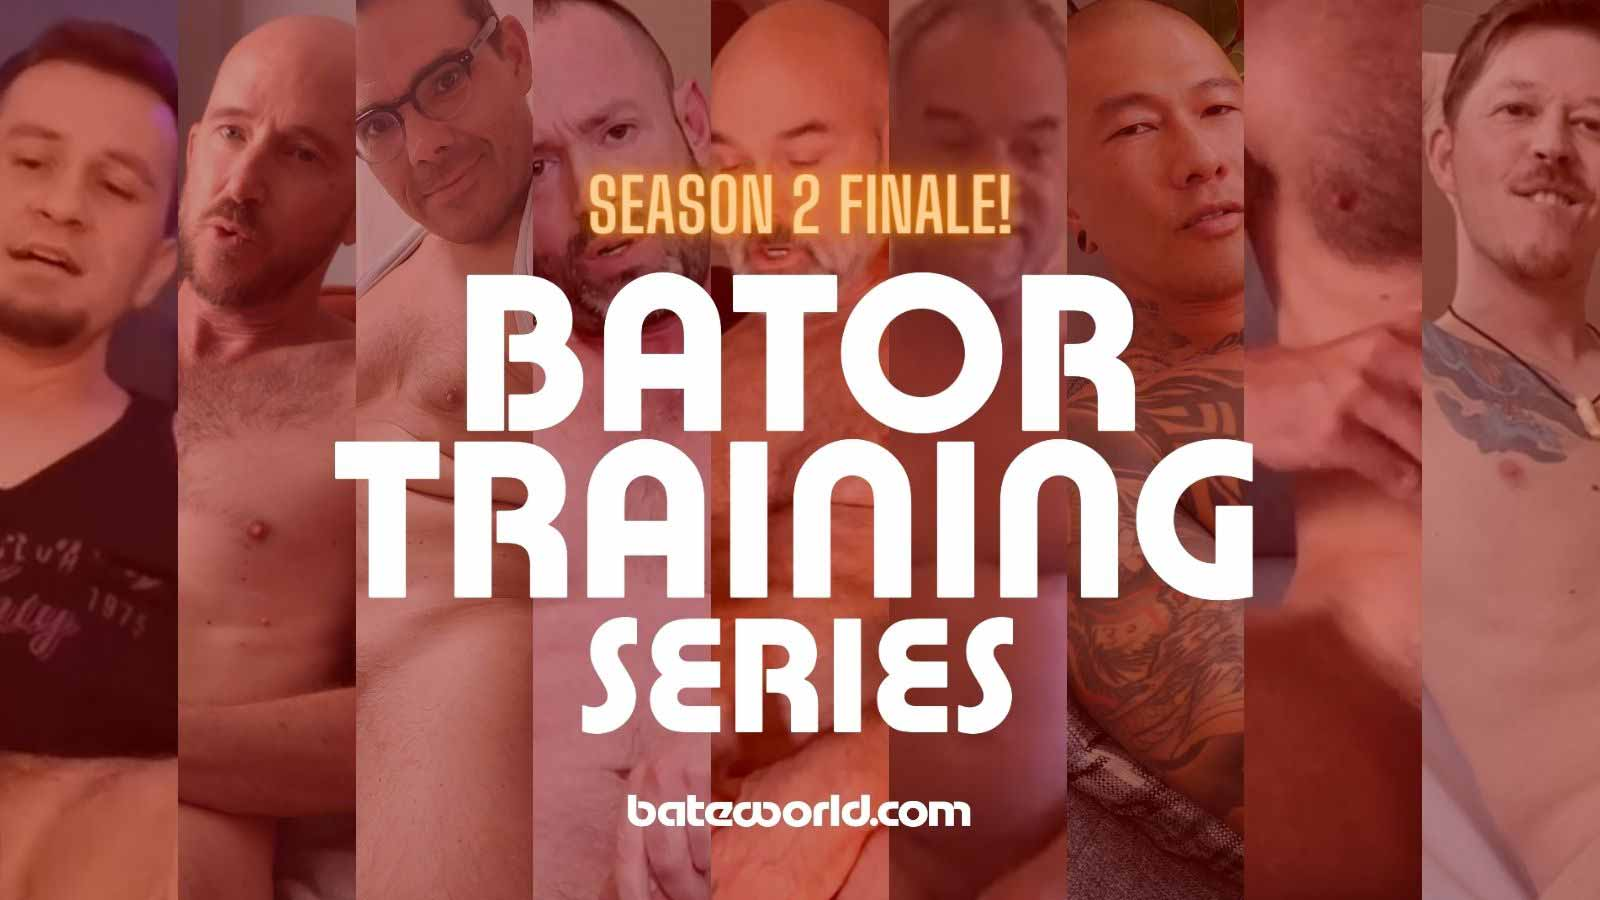 Bator Training Series: Season 2 Explosive Finale & More To Cum!